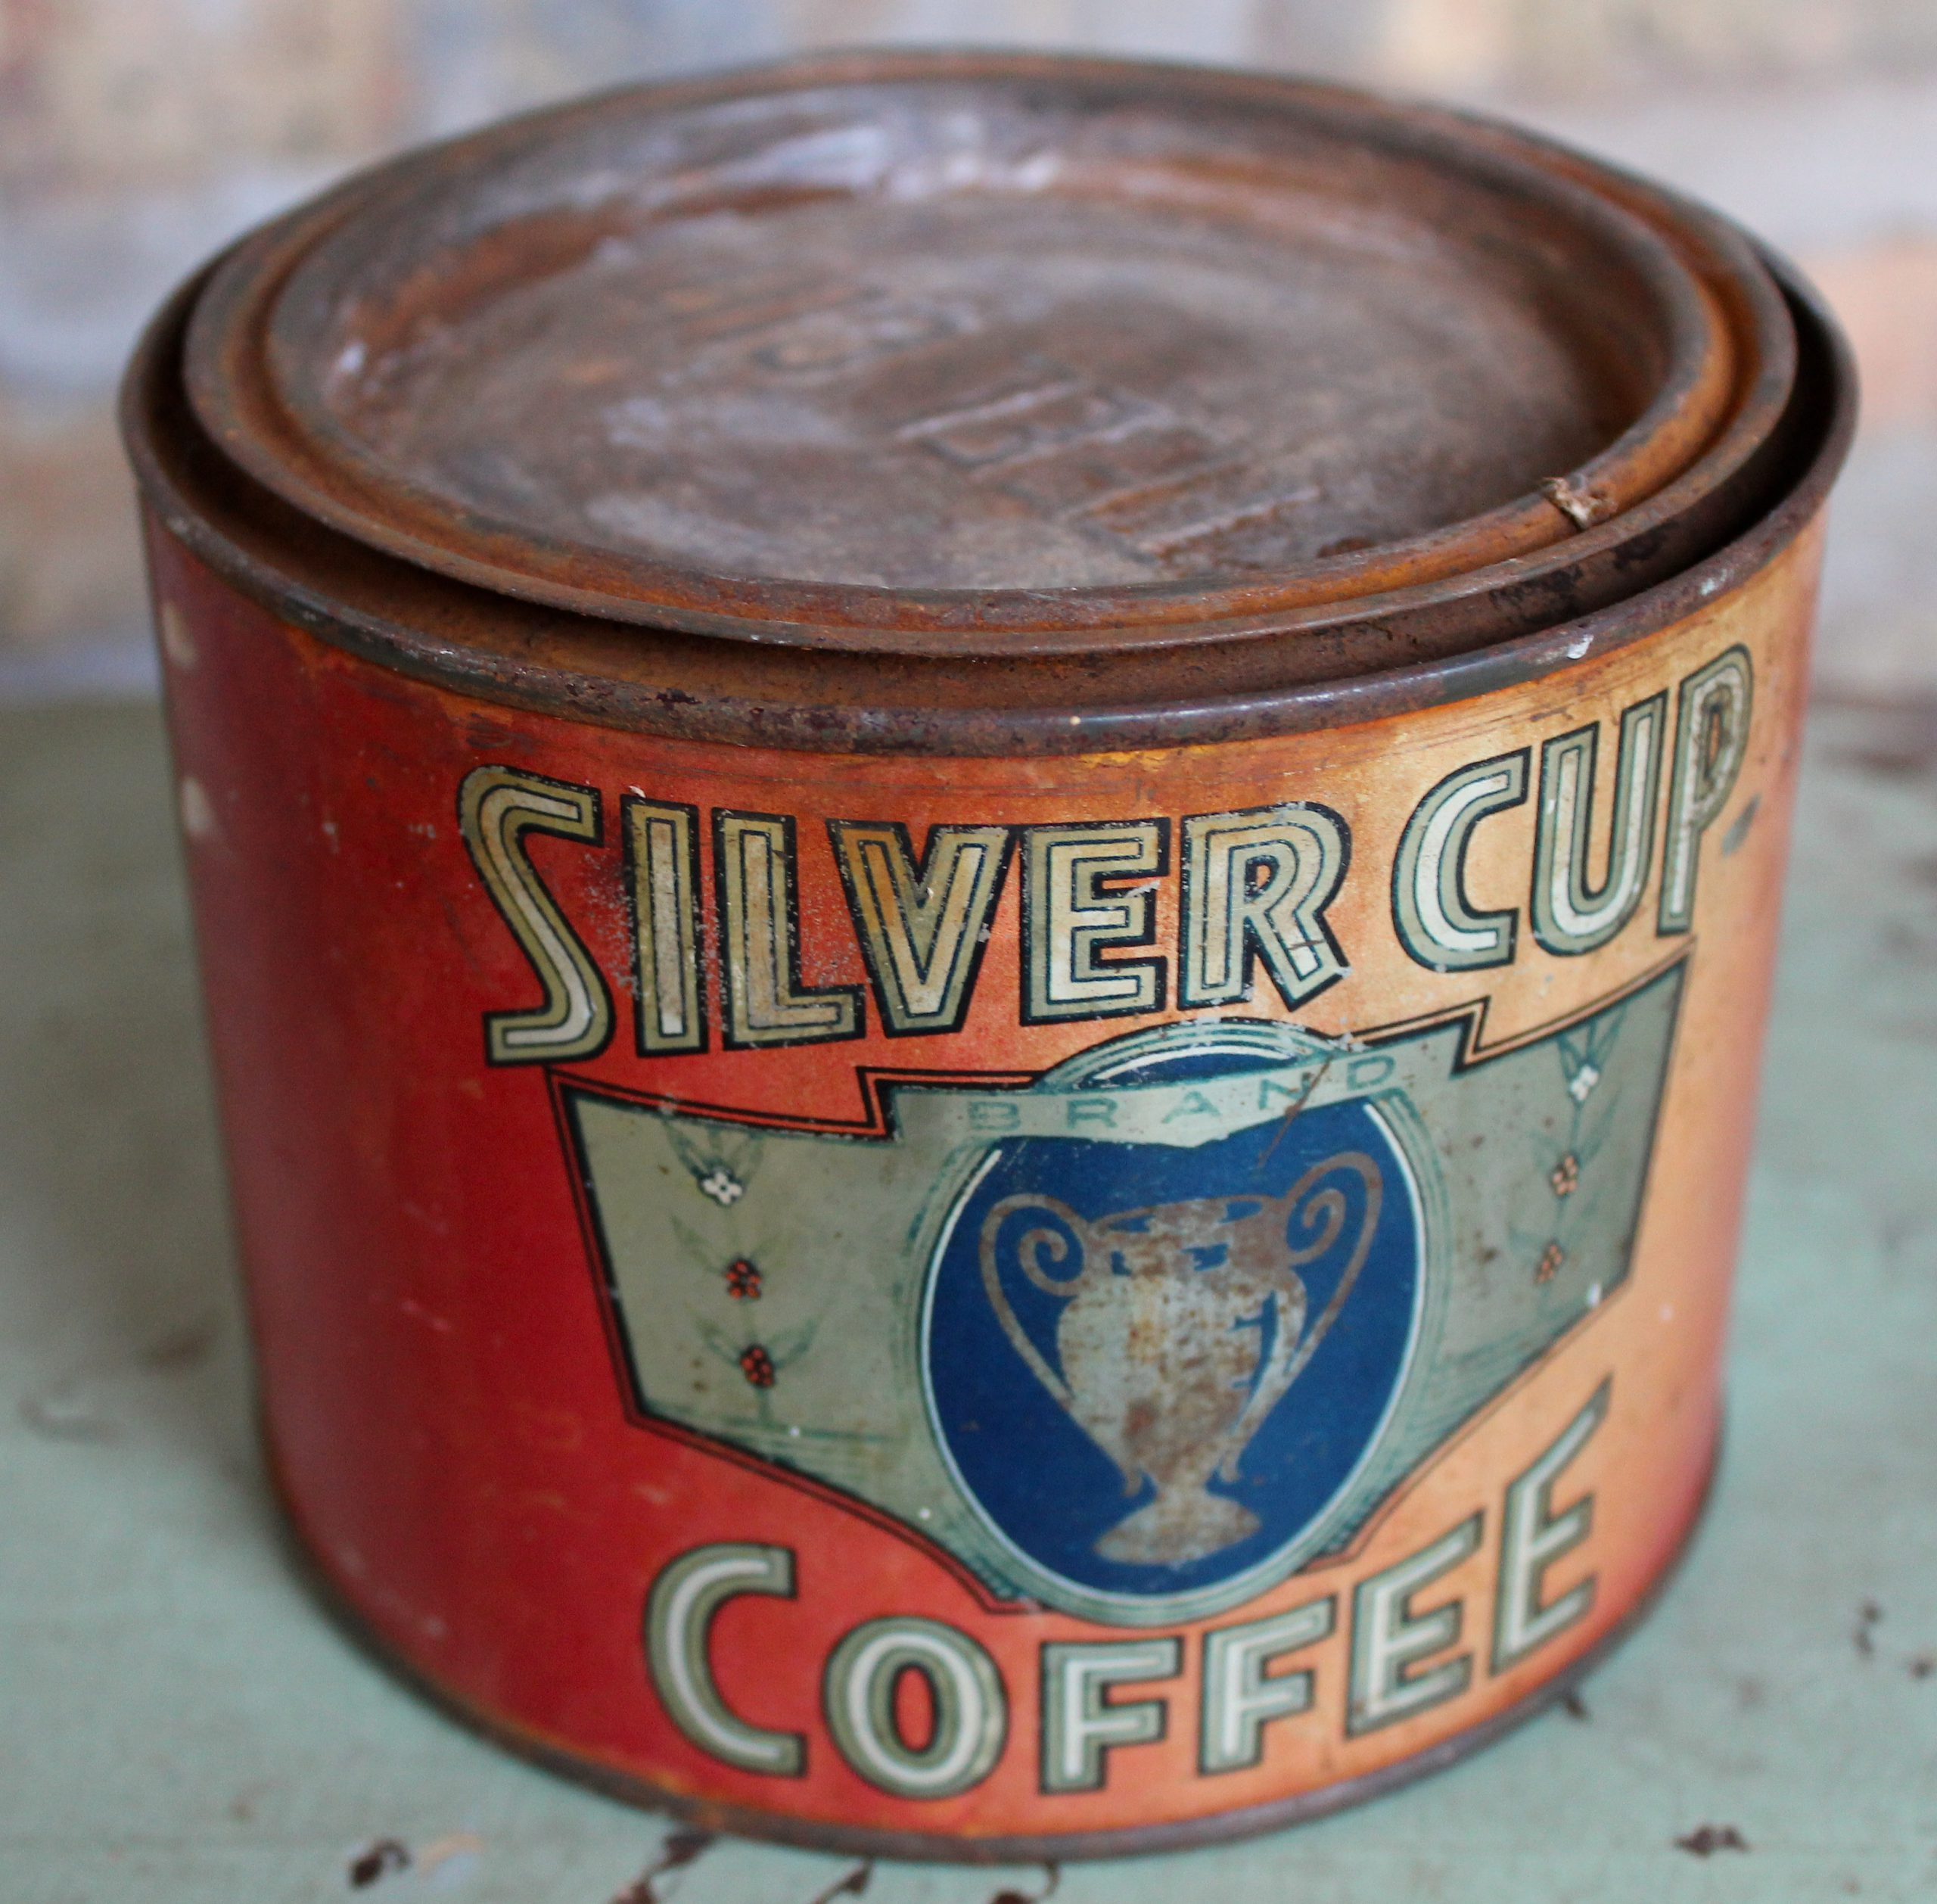 Silver Cup Coffee History